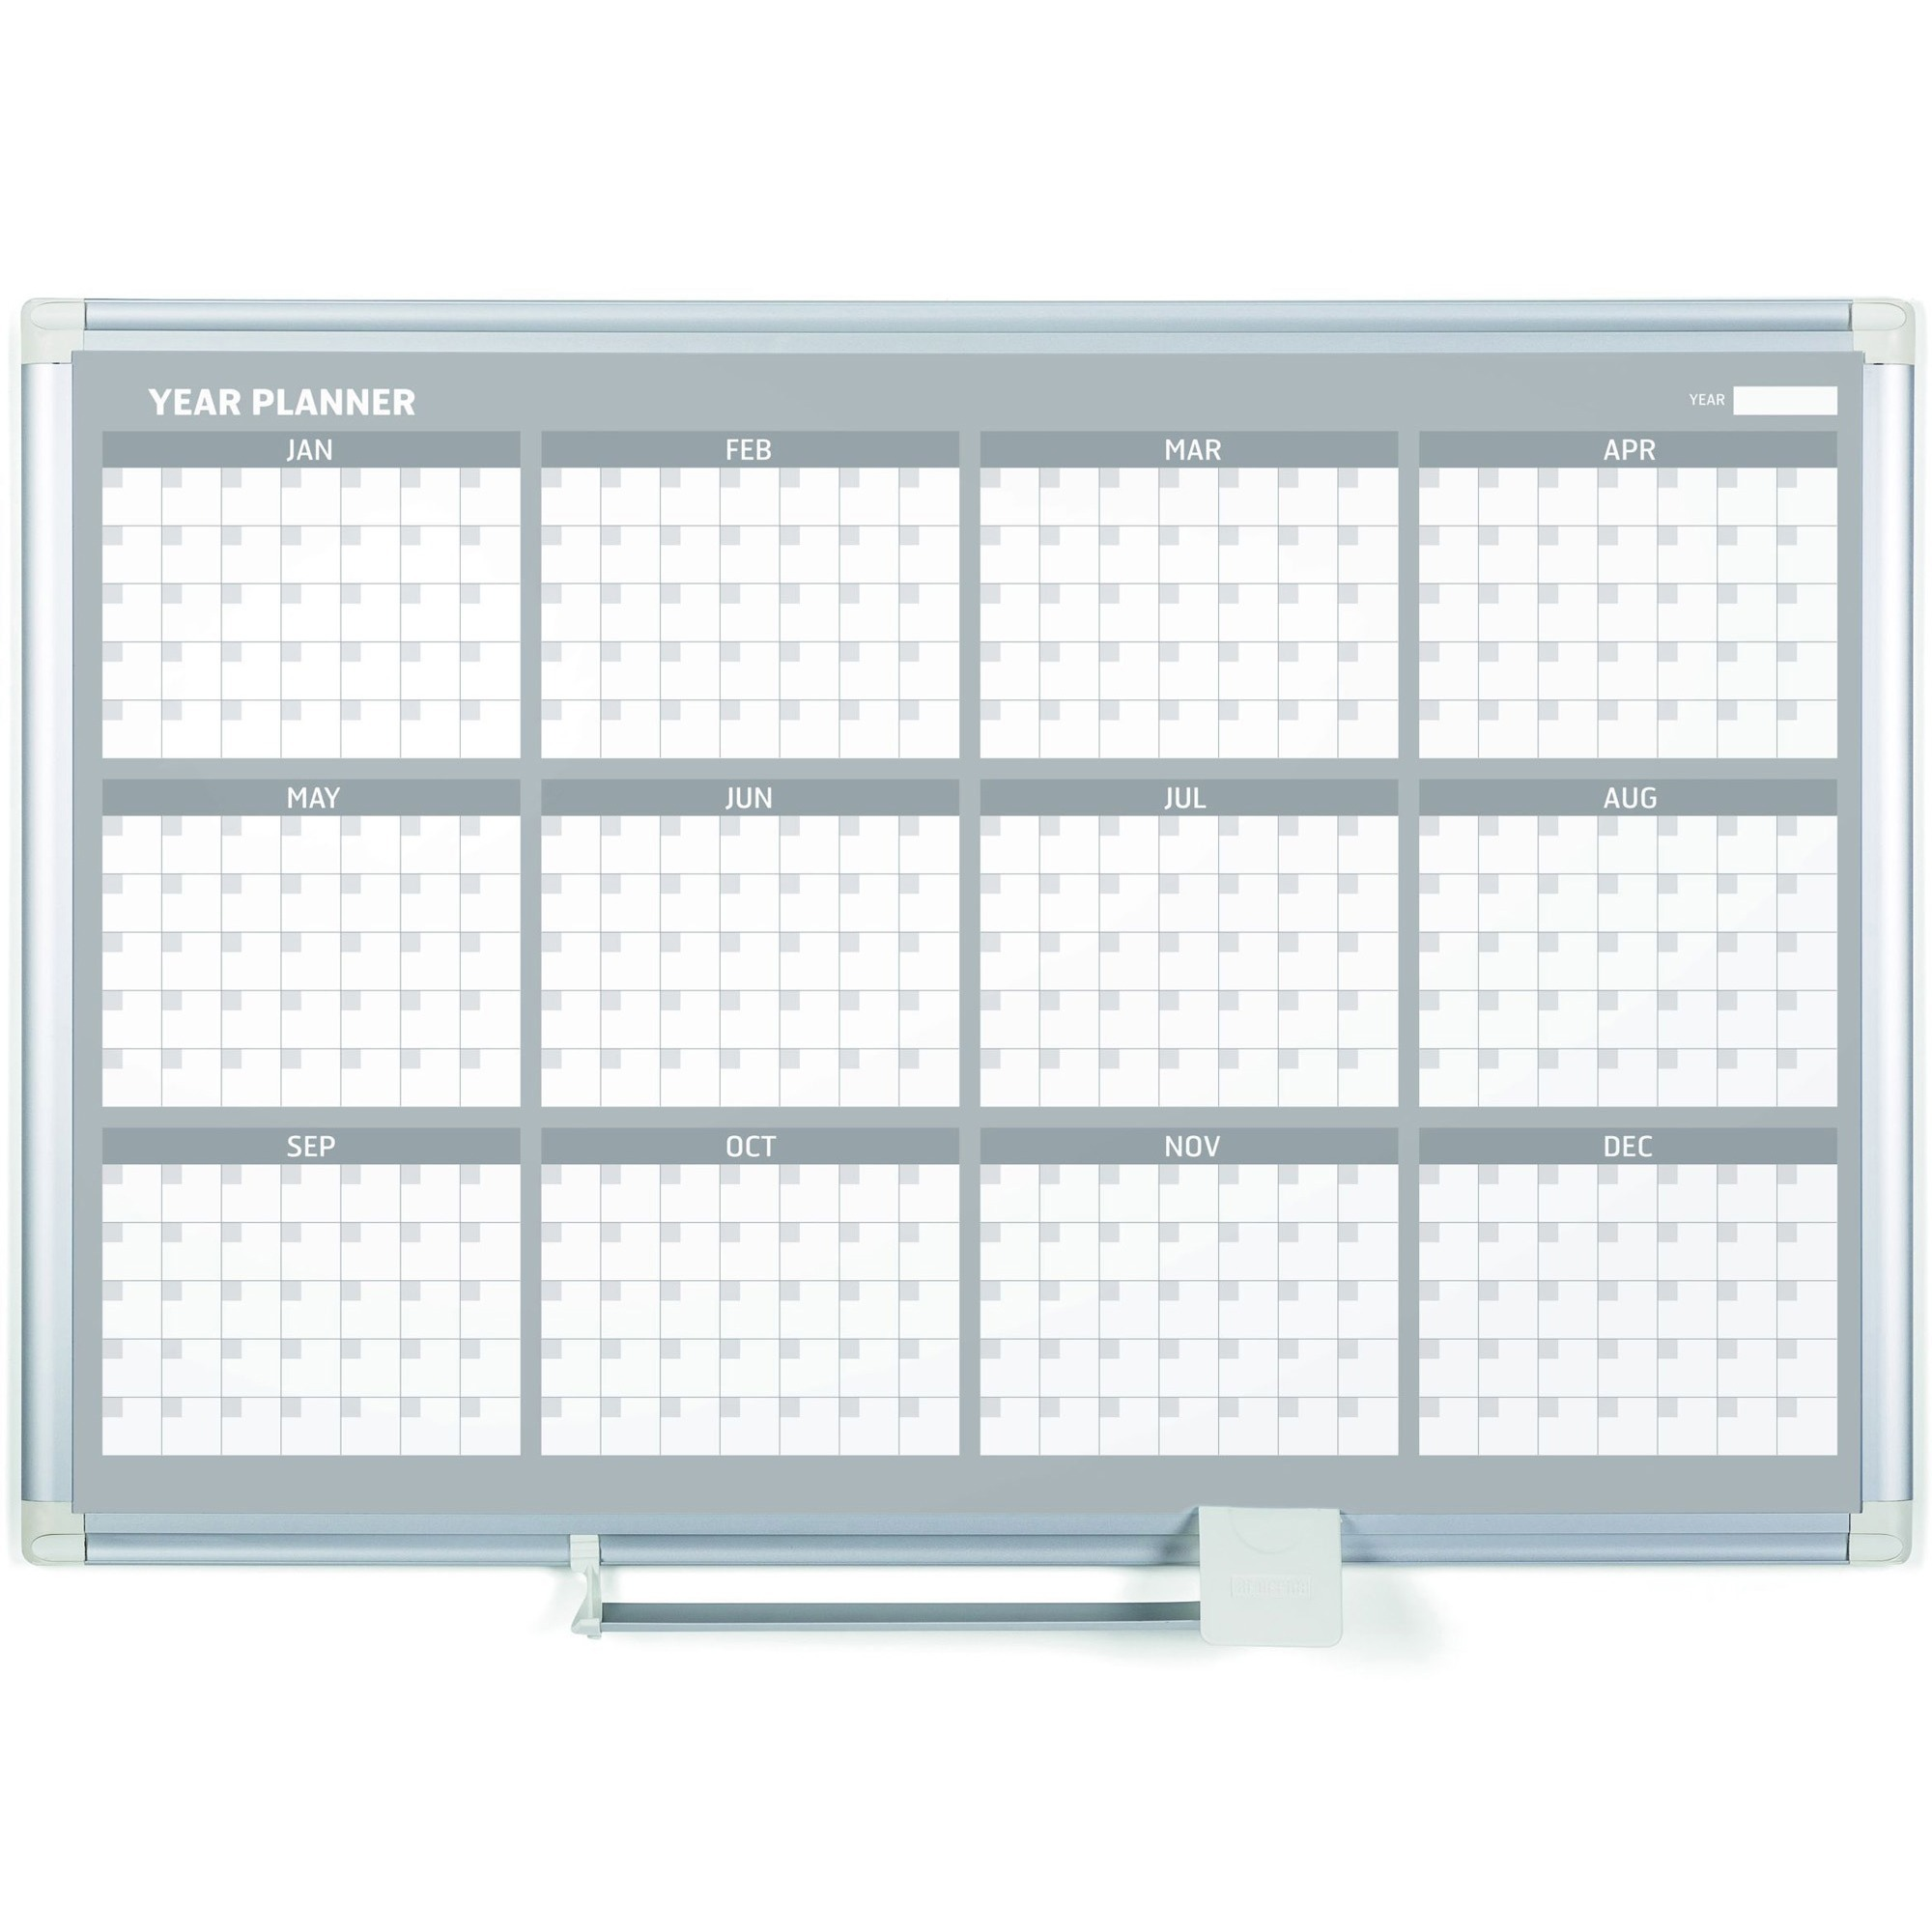 Bi-silque S.a Mastervision 36 12-month Calendar Planning Board - Monthly, Yearly - 1 Year - Wall Mountable - White - Aluminum - Magnetic, Dry Erase Surface, Durable, Reference Calendar, Accessory Tray, Scratch Resistant, Ghost Resistant